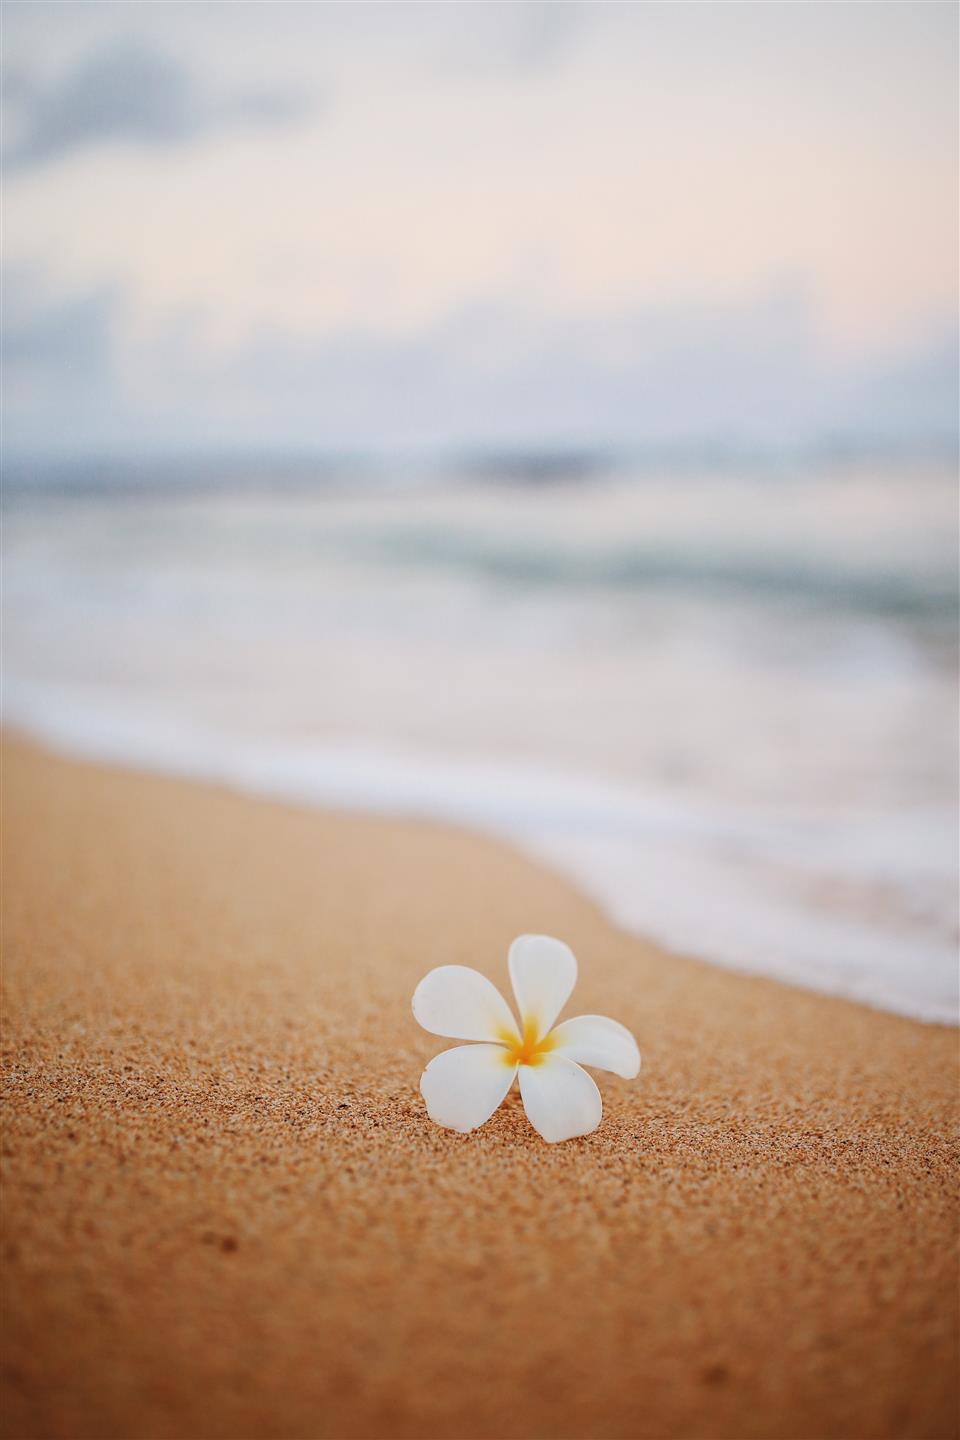 a single flower on the sand with a wave crashing